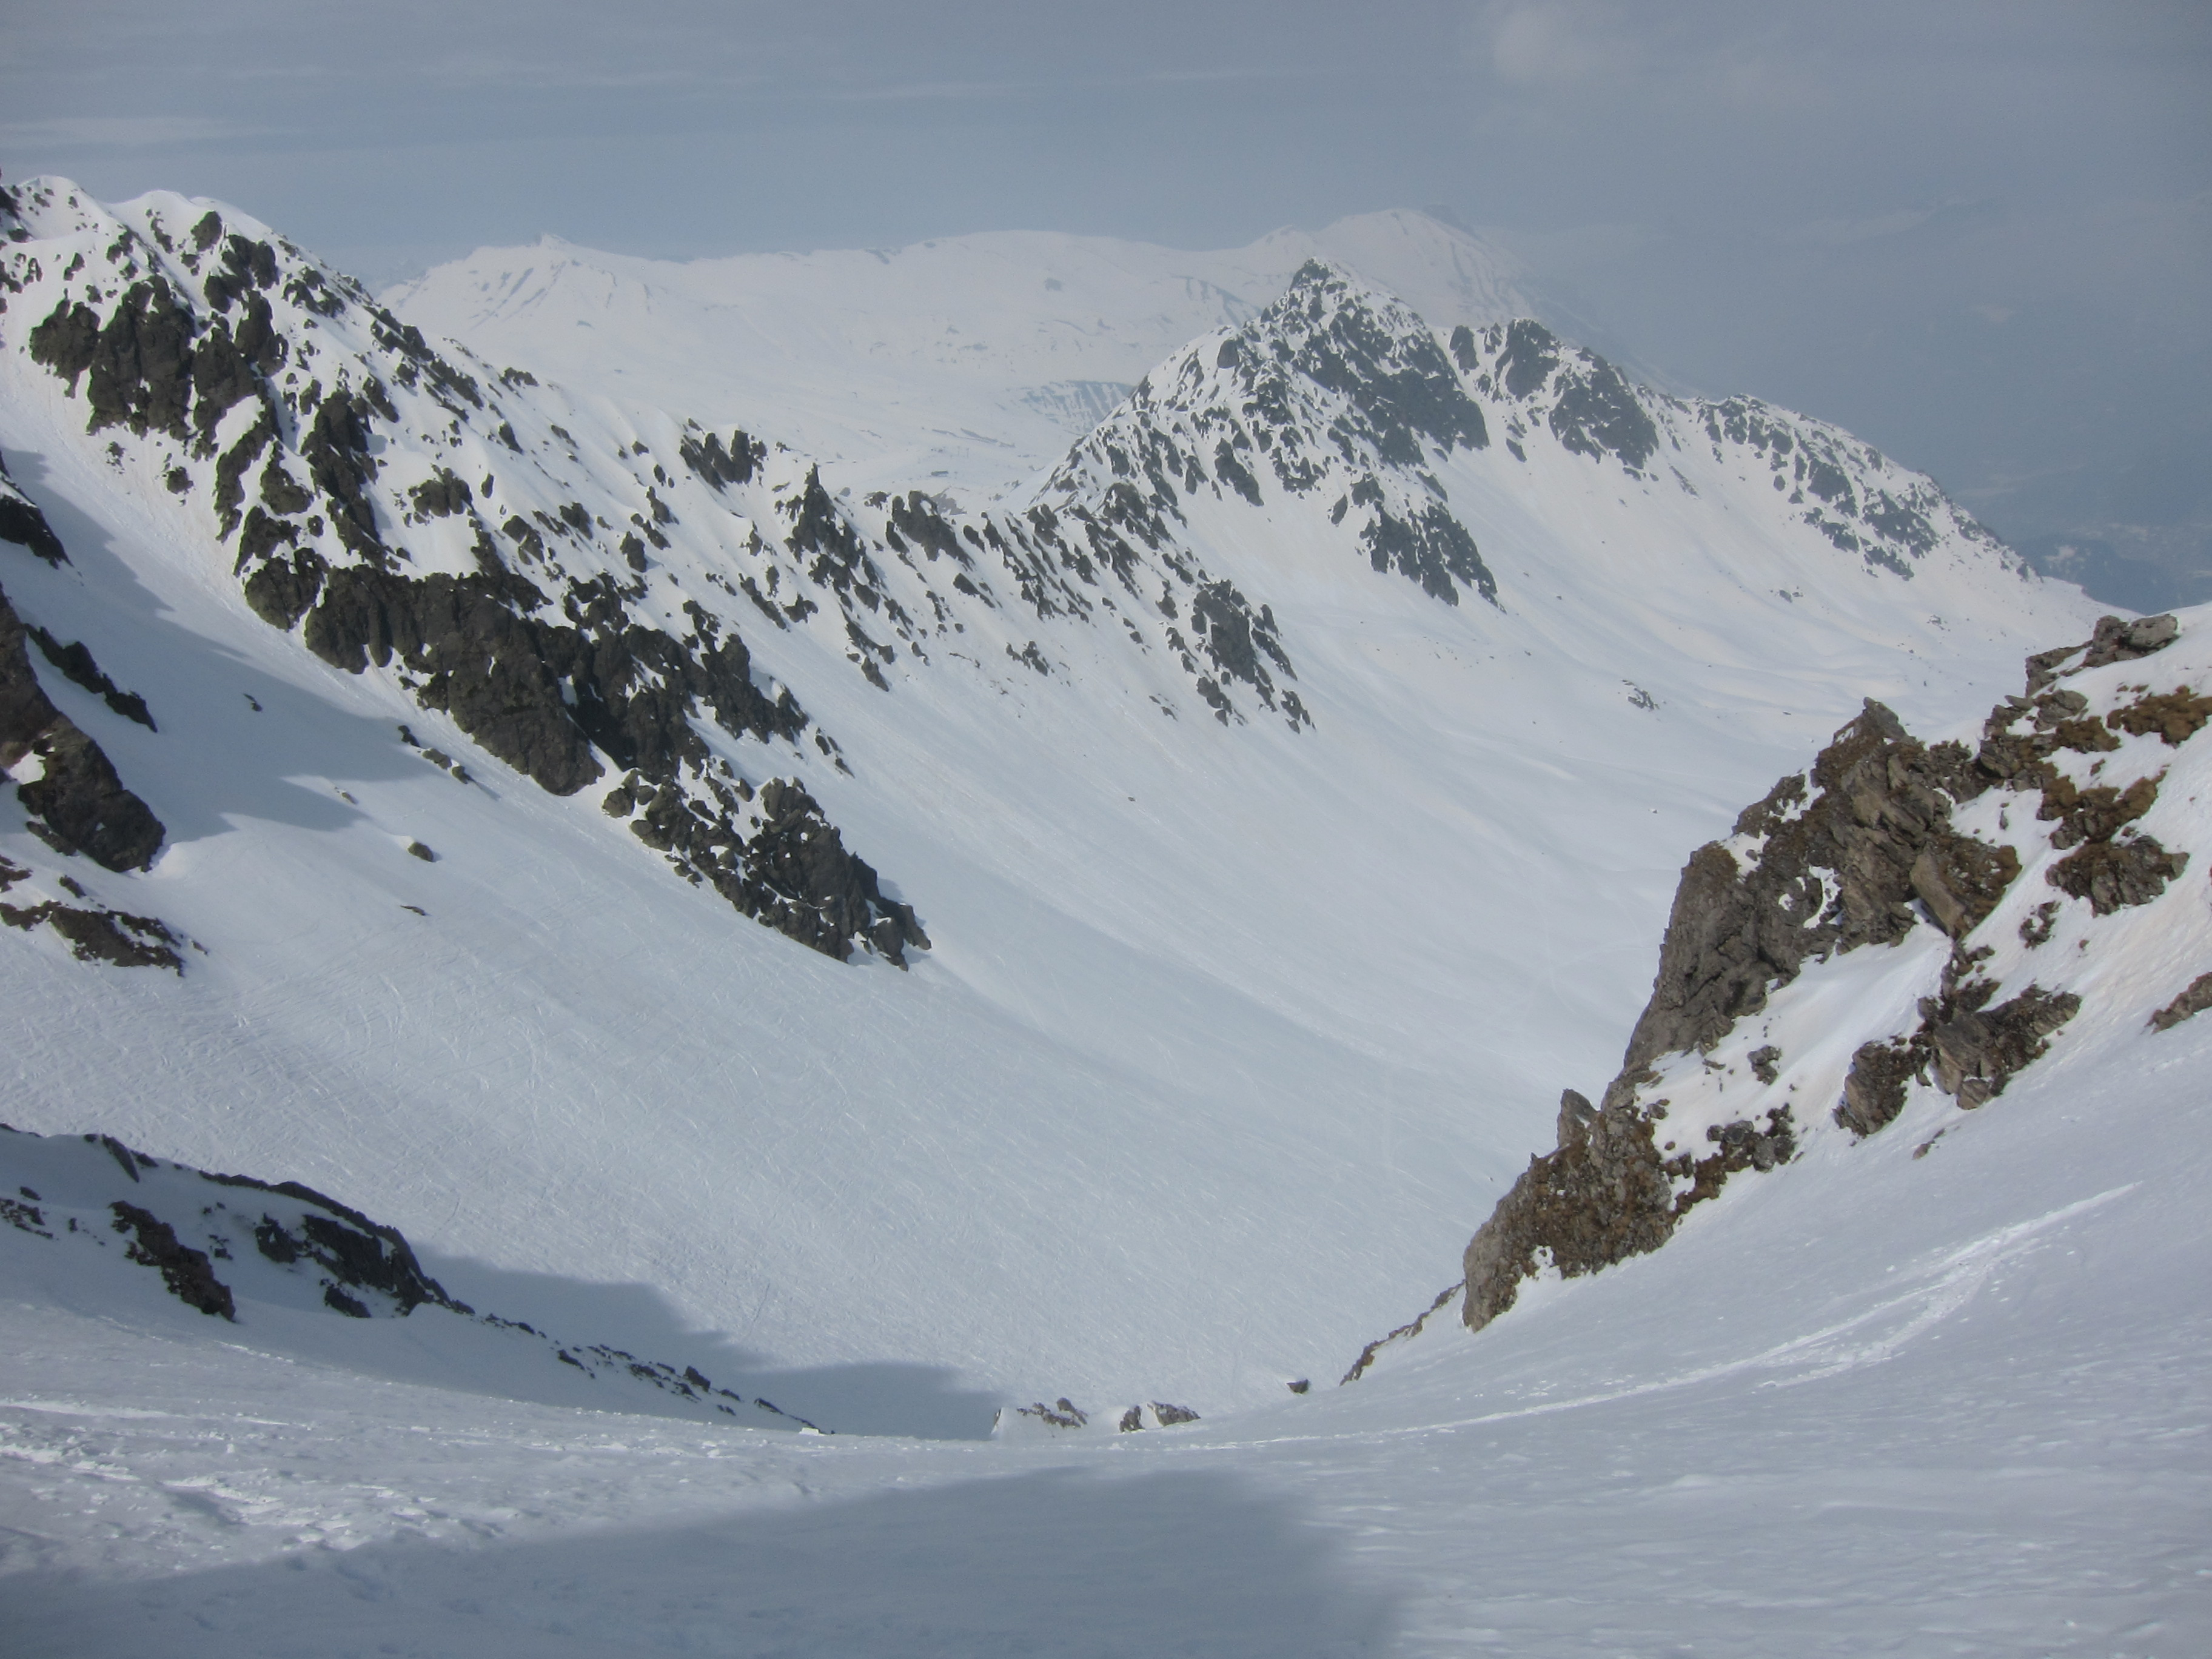 I picked a quiet slope to ski, some grippy hard snow about.